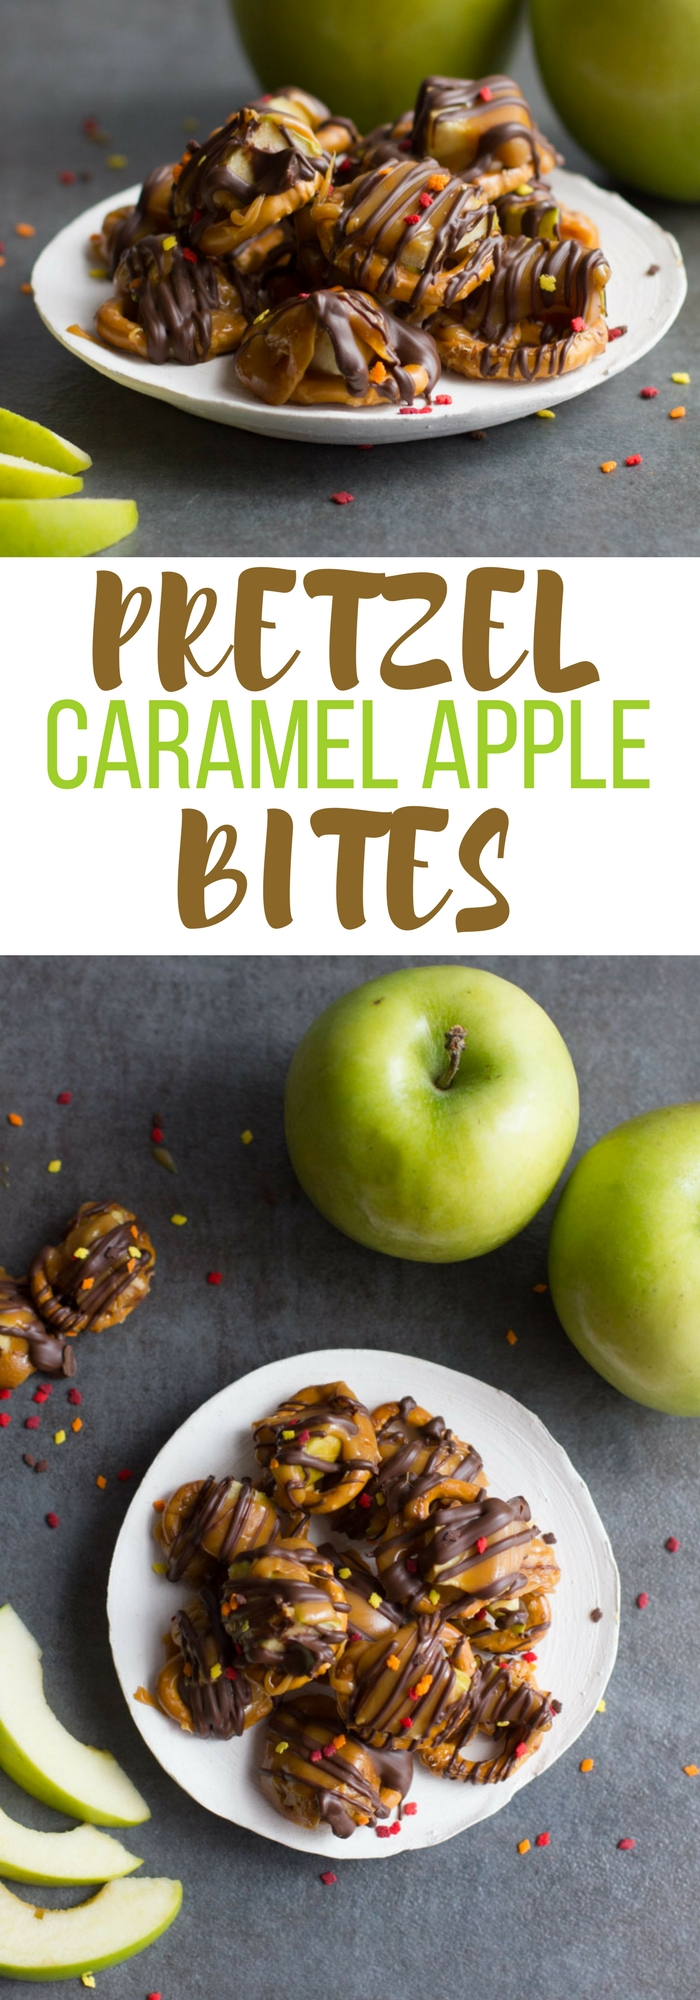 These caramel apple pretzel bites are a fun party treat. Get the awesome fall caramel apple flavor without the mess!